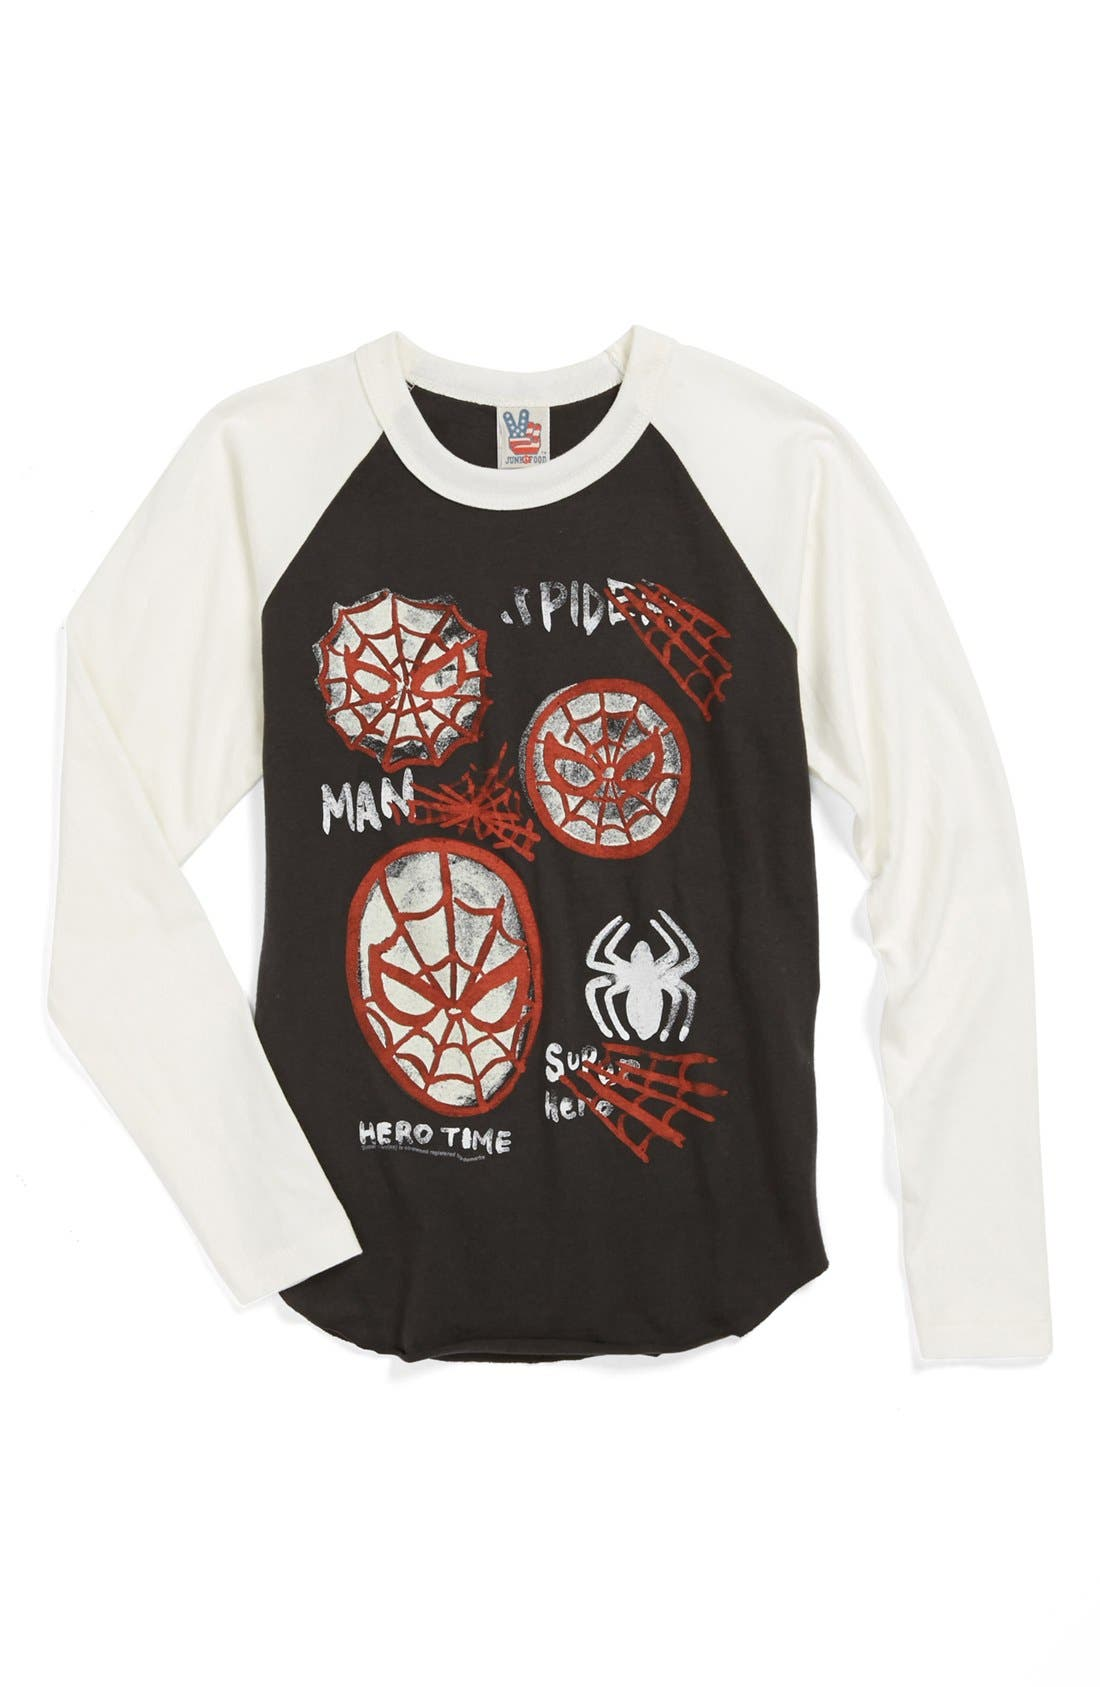 Alternate Image 1 Selected - Junk Food 'Spider-Man' Baseball T-Shirt (Little Boys & Big Boys)